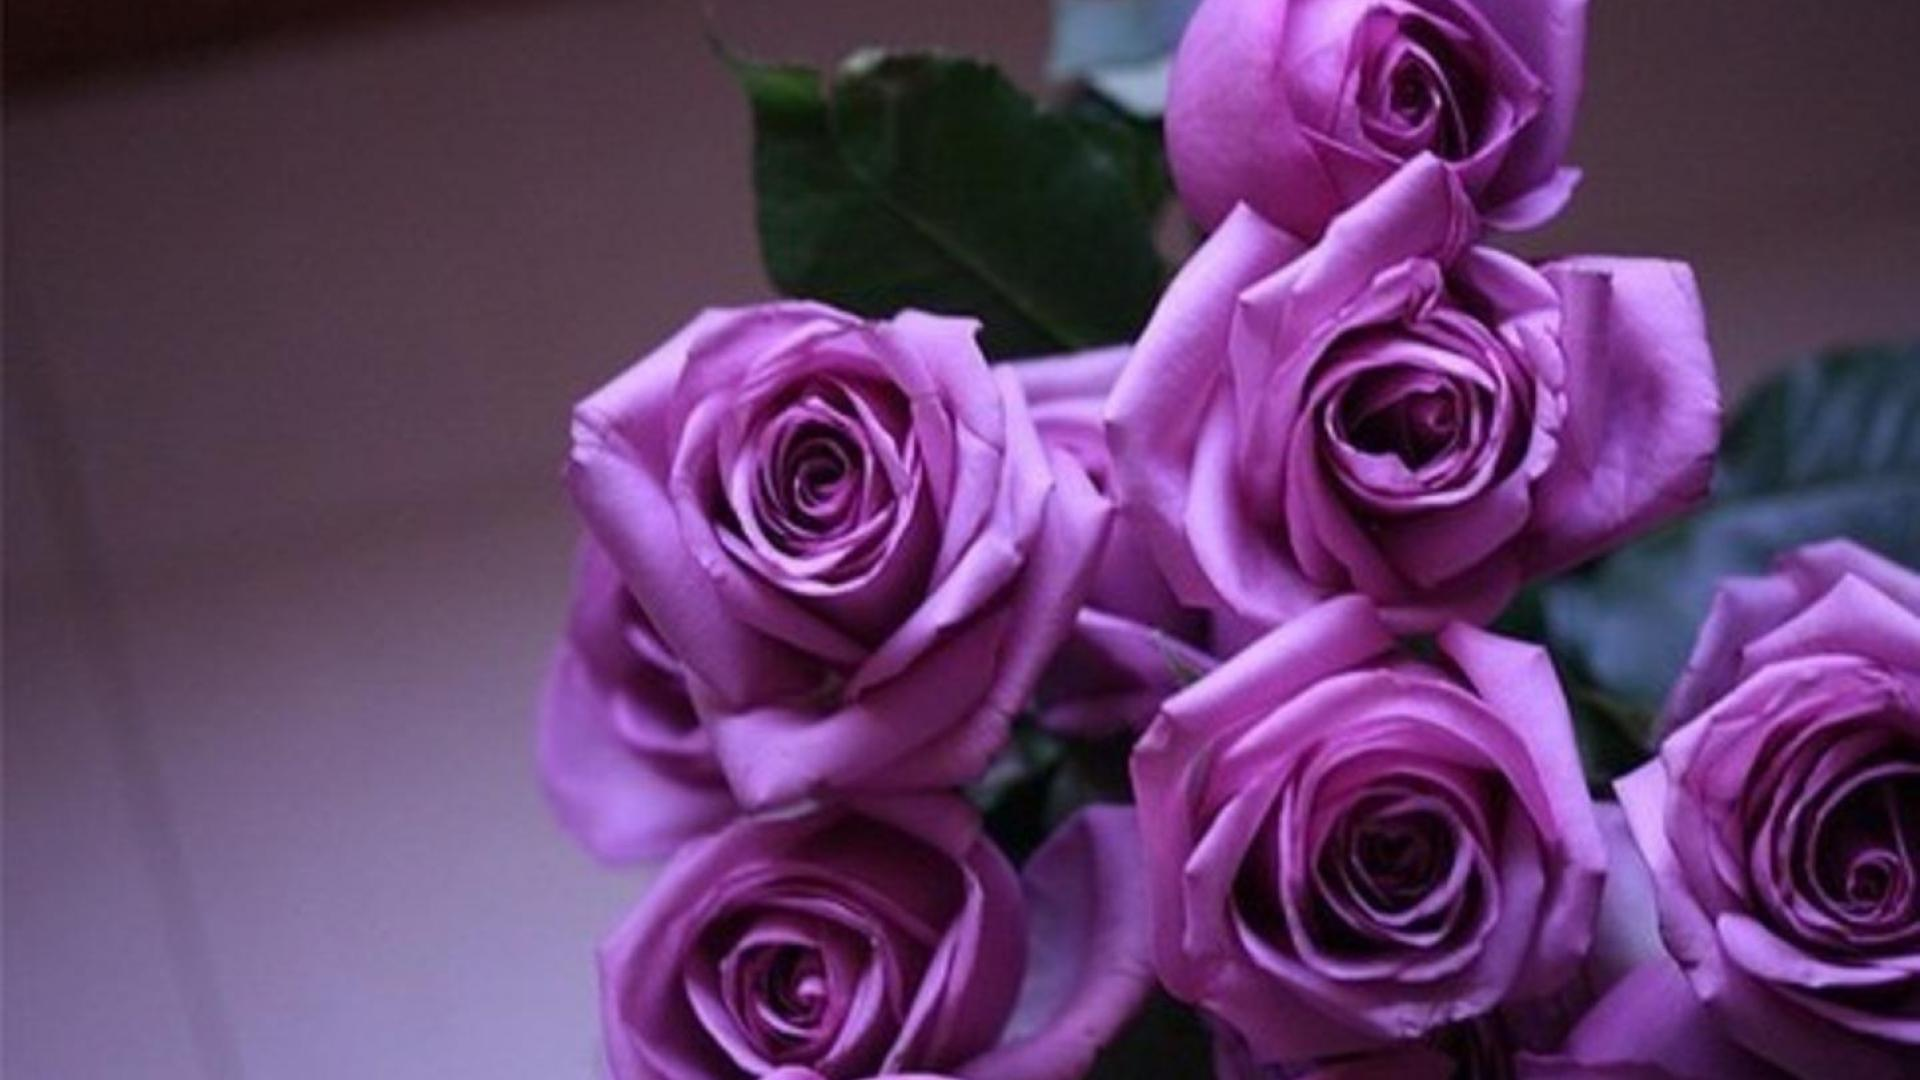 wallpapers of purple roses - photo #18